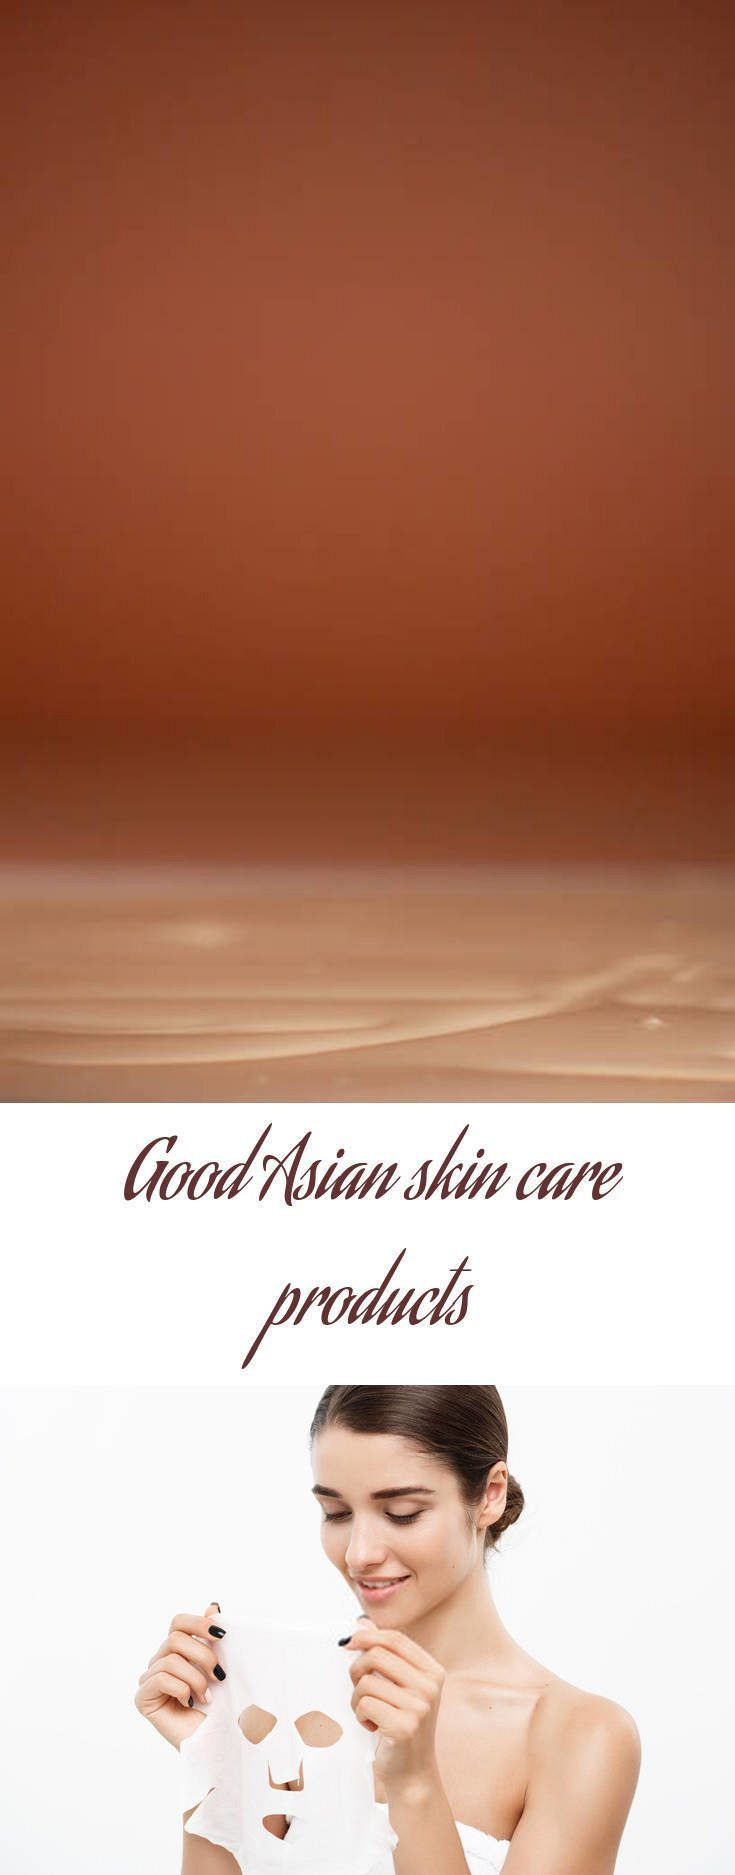 Good Asian skin care products. Outstanding Guidelines To Add In Your Pure Skin Care Program. #koreanskincareroutine